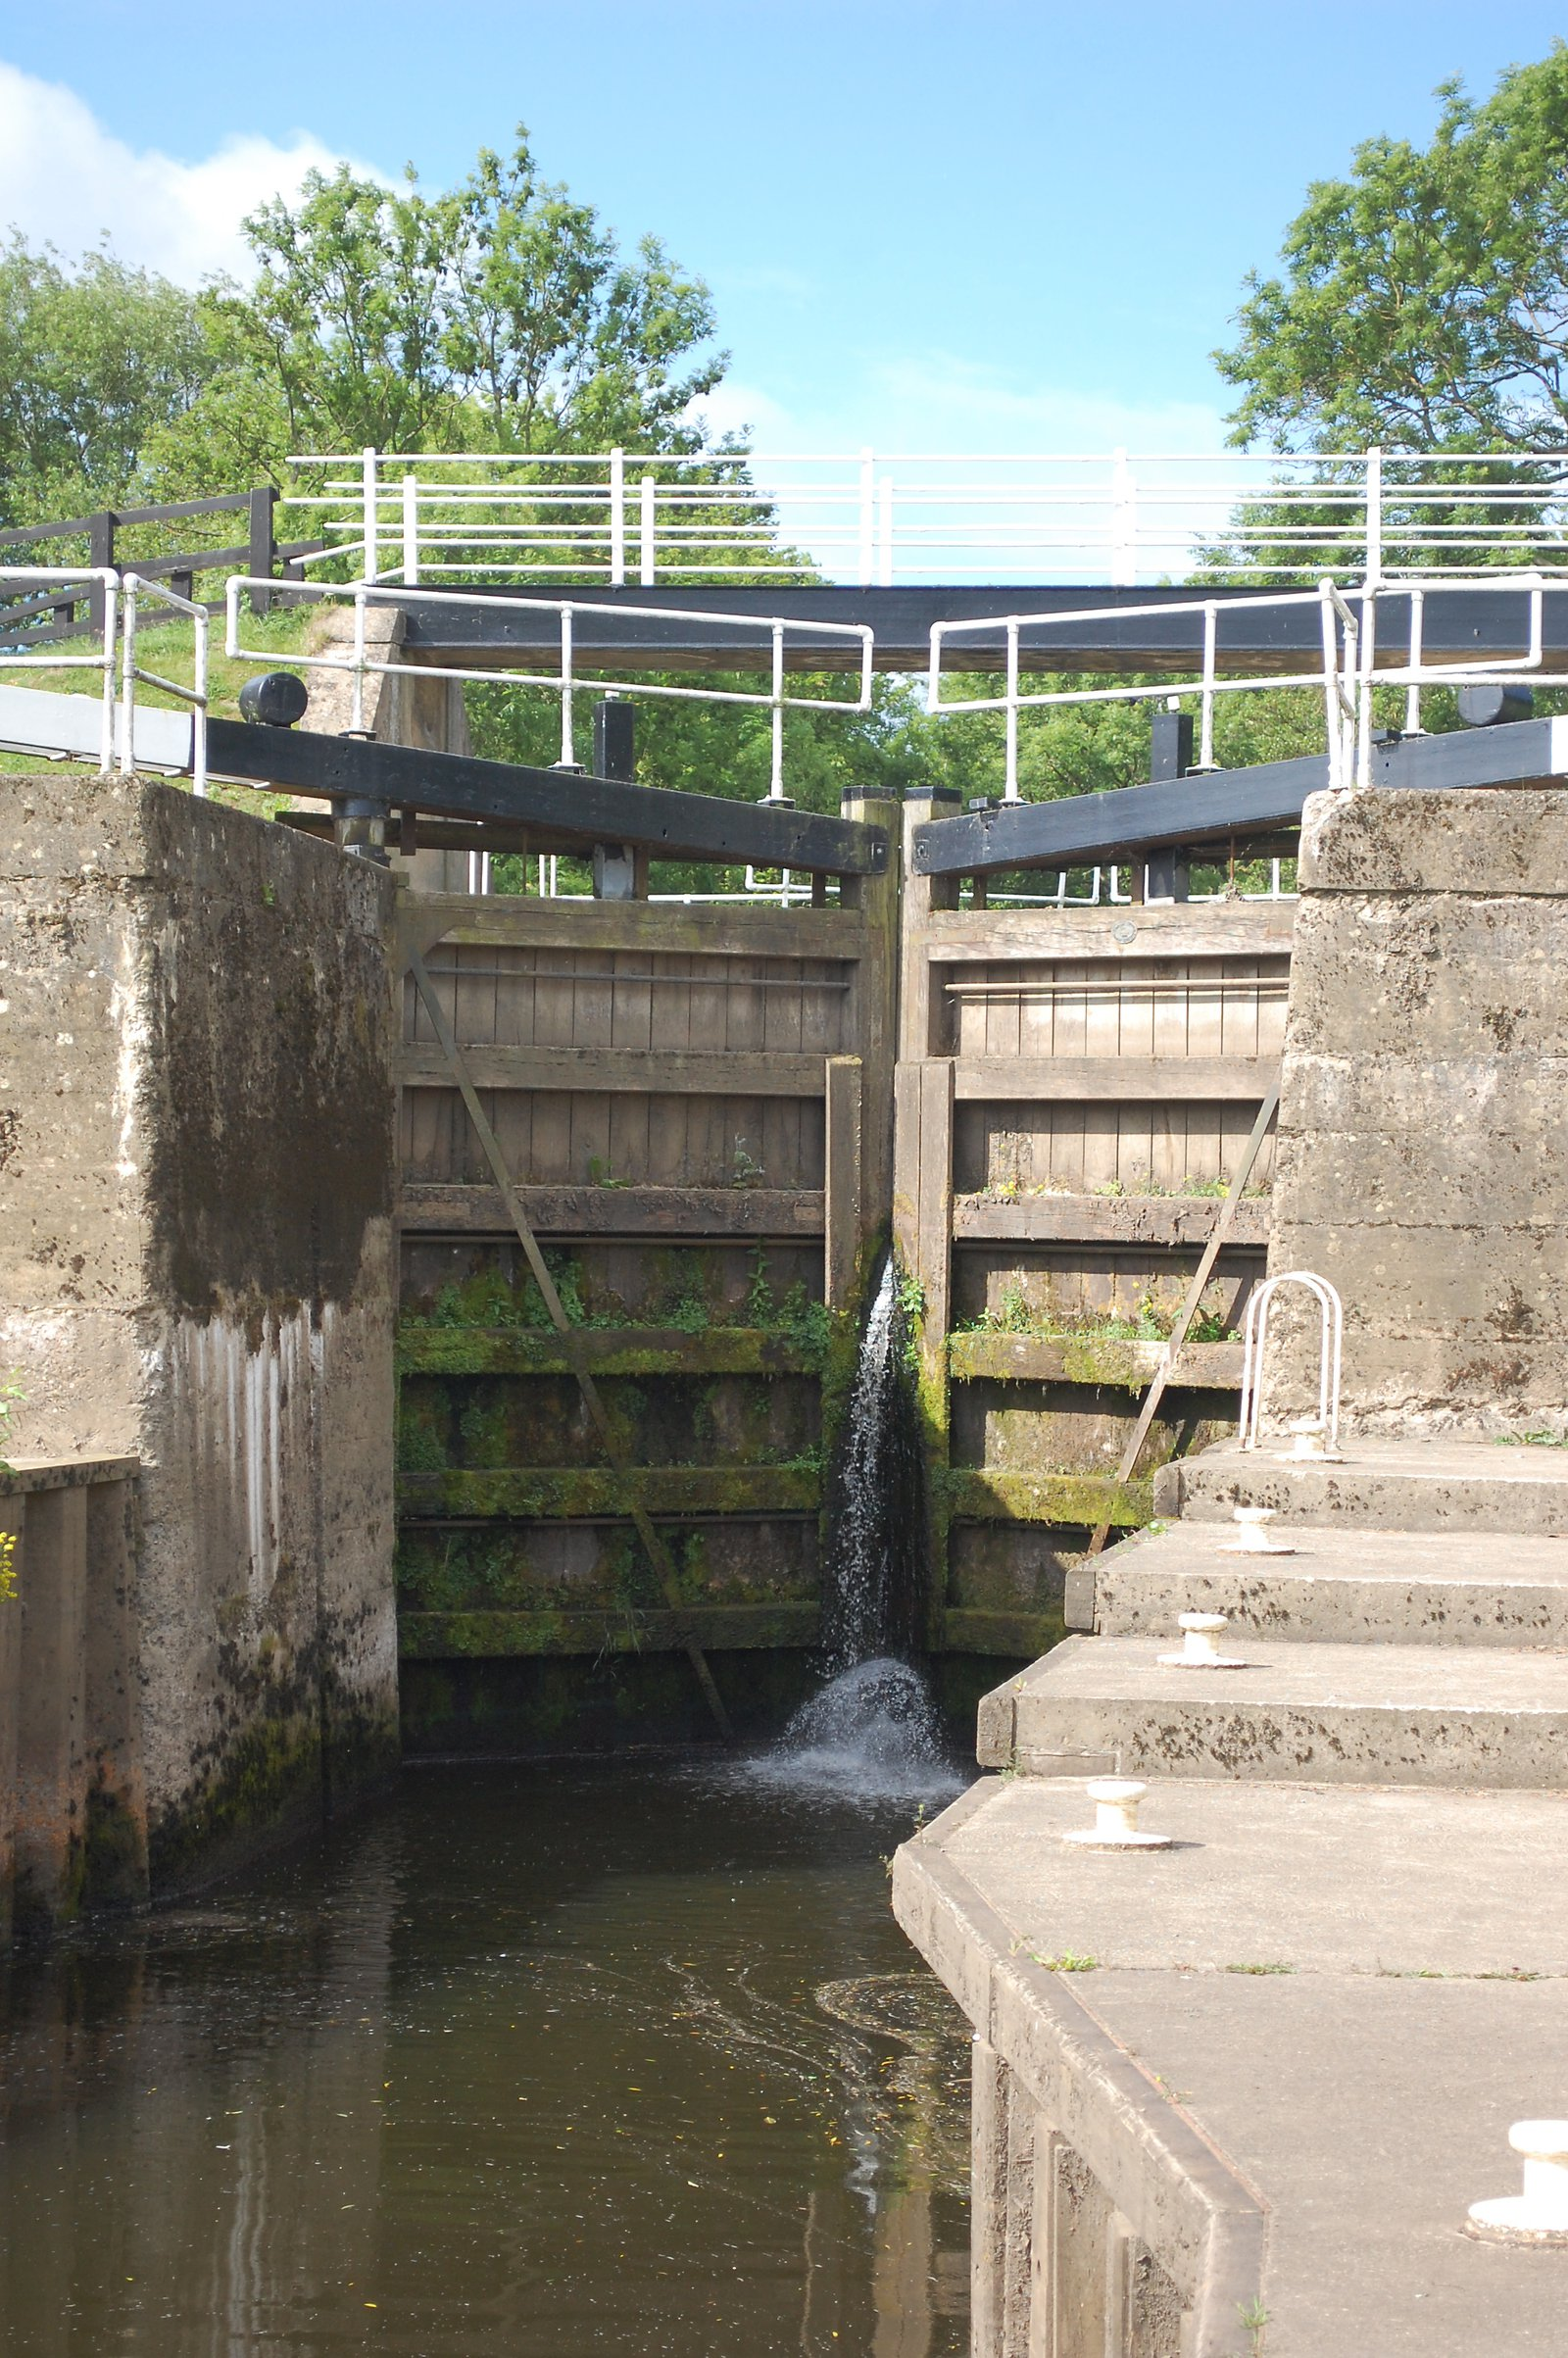 Milby Lock In Yorkshire